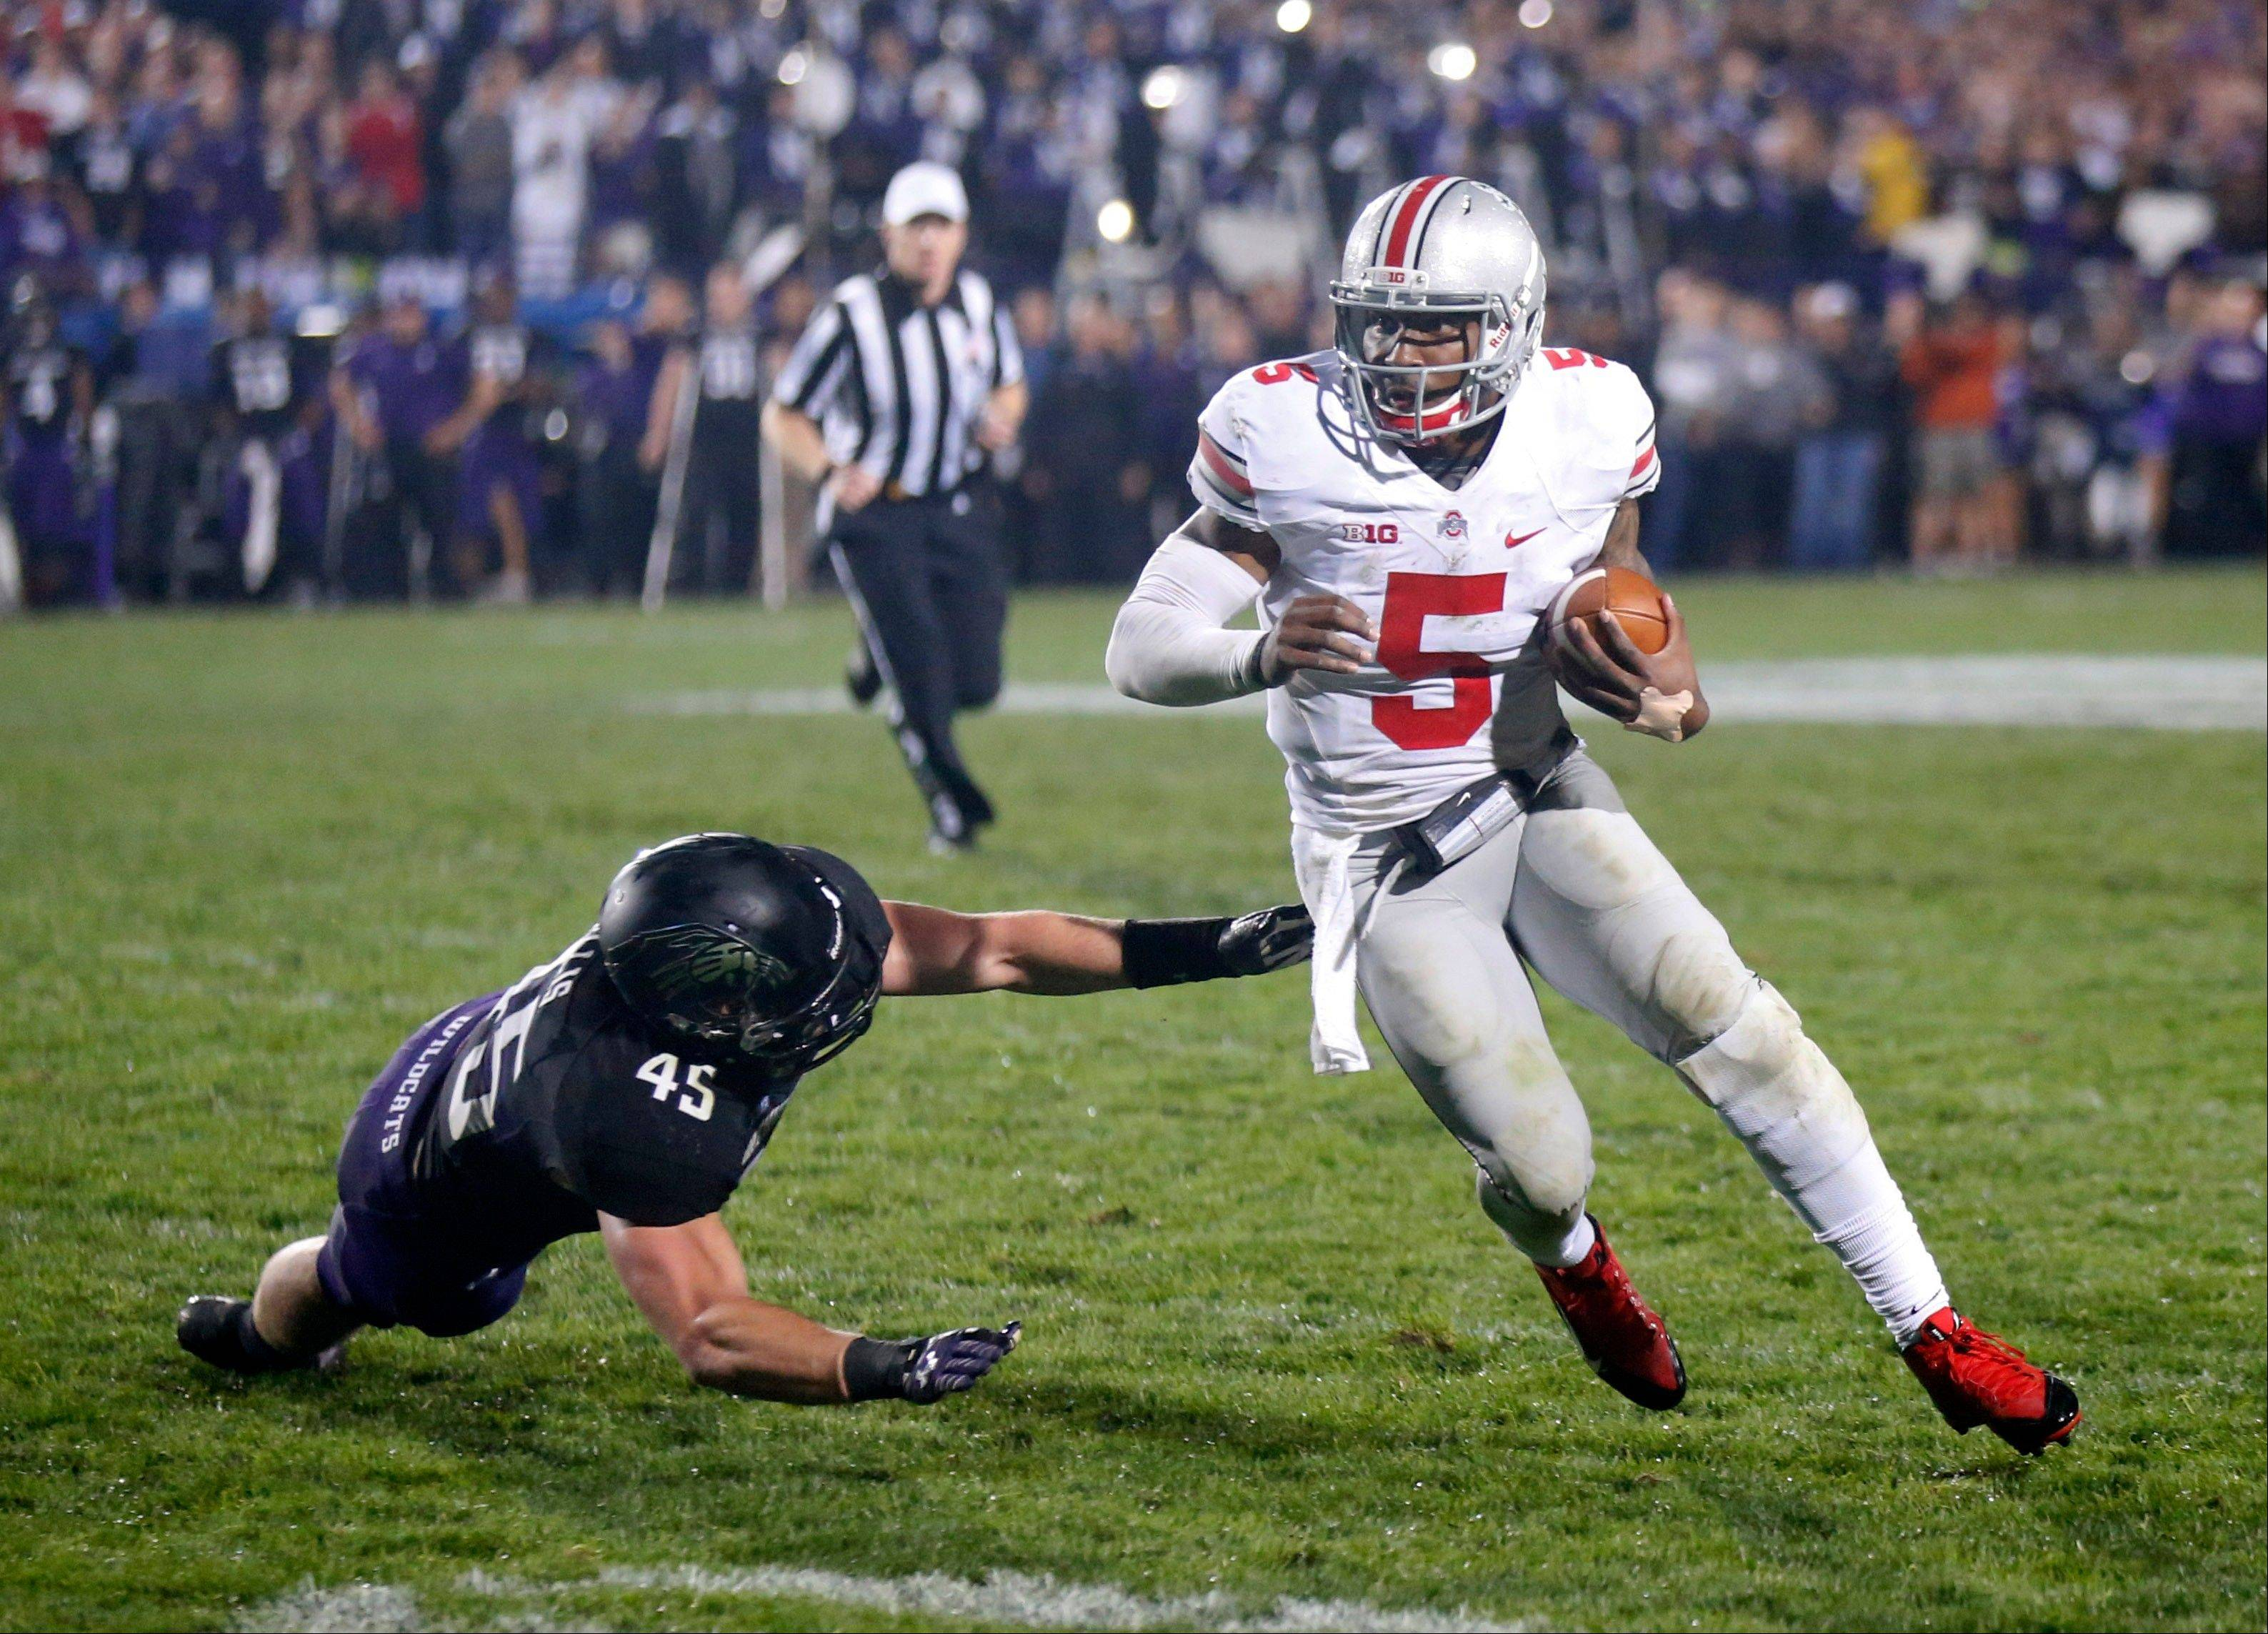 Ohio State quarterback Braxton Miller (5) runs past the outstretched hand of Northwestern linebacker Collin Ellis (45) during Saturday's game in Evanston. Ohio State won 40-30.